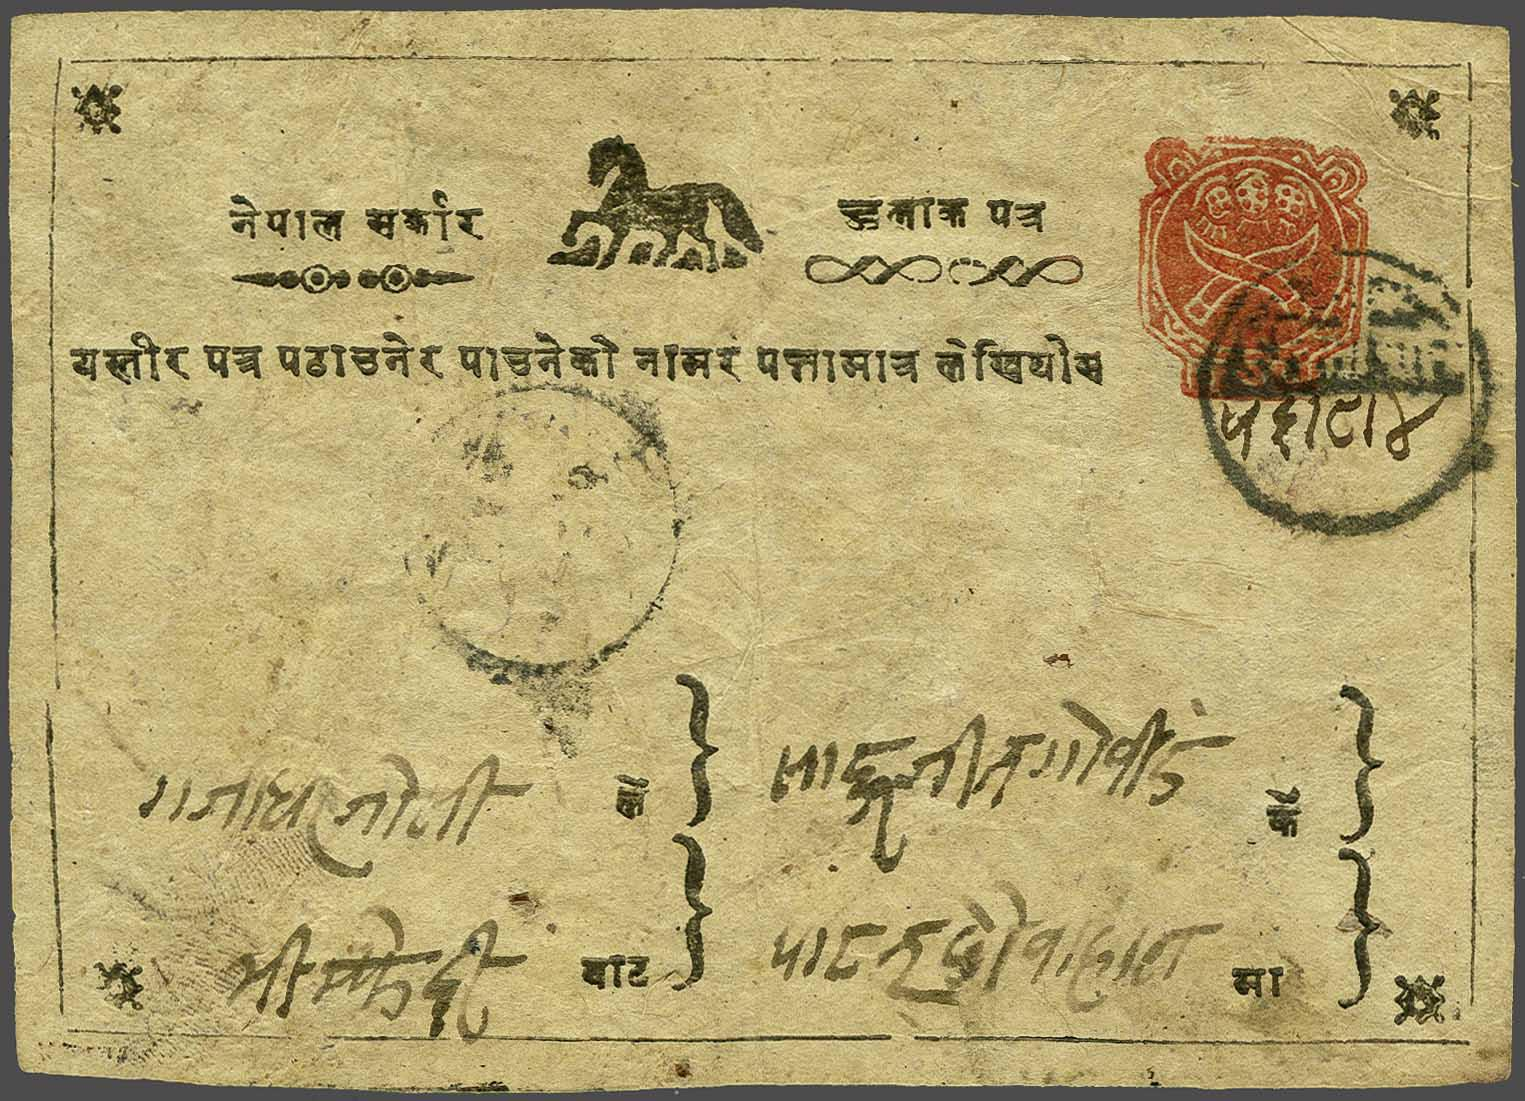 Lot 15 - Great Britain and former colonies Nepal -  Corinphila Veilingen Auction 245-246 Day 1 - Nepal - The Dick van der Wateren Collection, Foreign countries - Single lots, Picture postcards